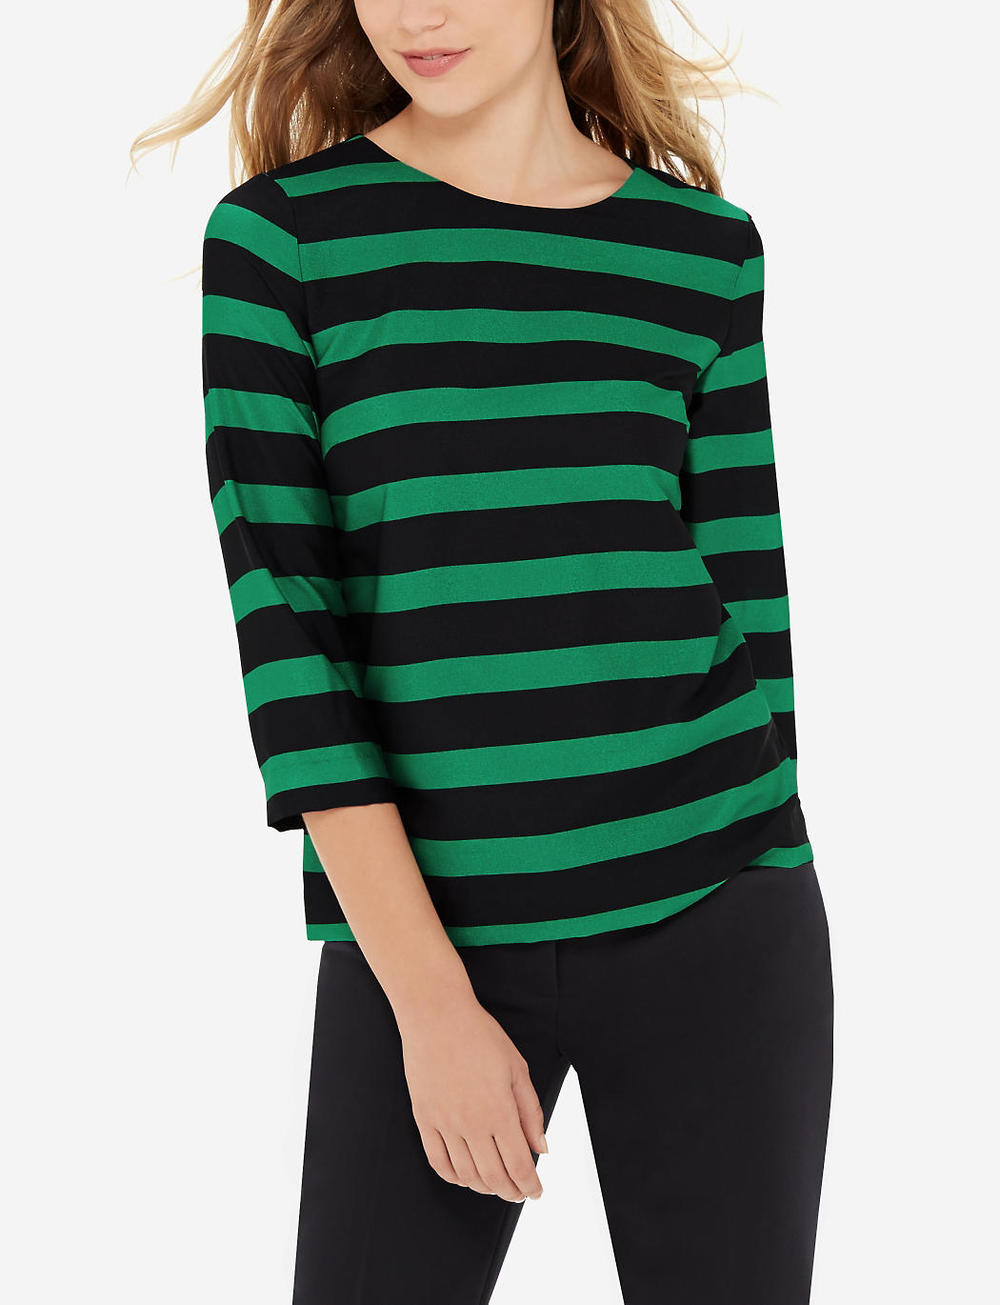 Striped Lightweight Top. The Limited. Was: $59 Now: $29.